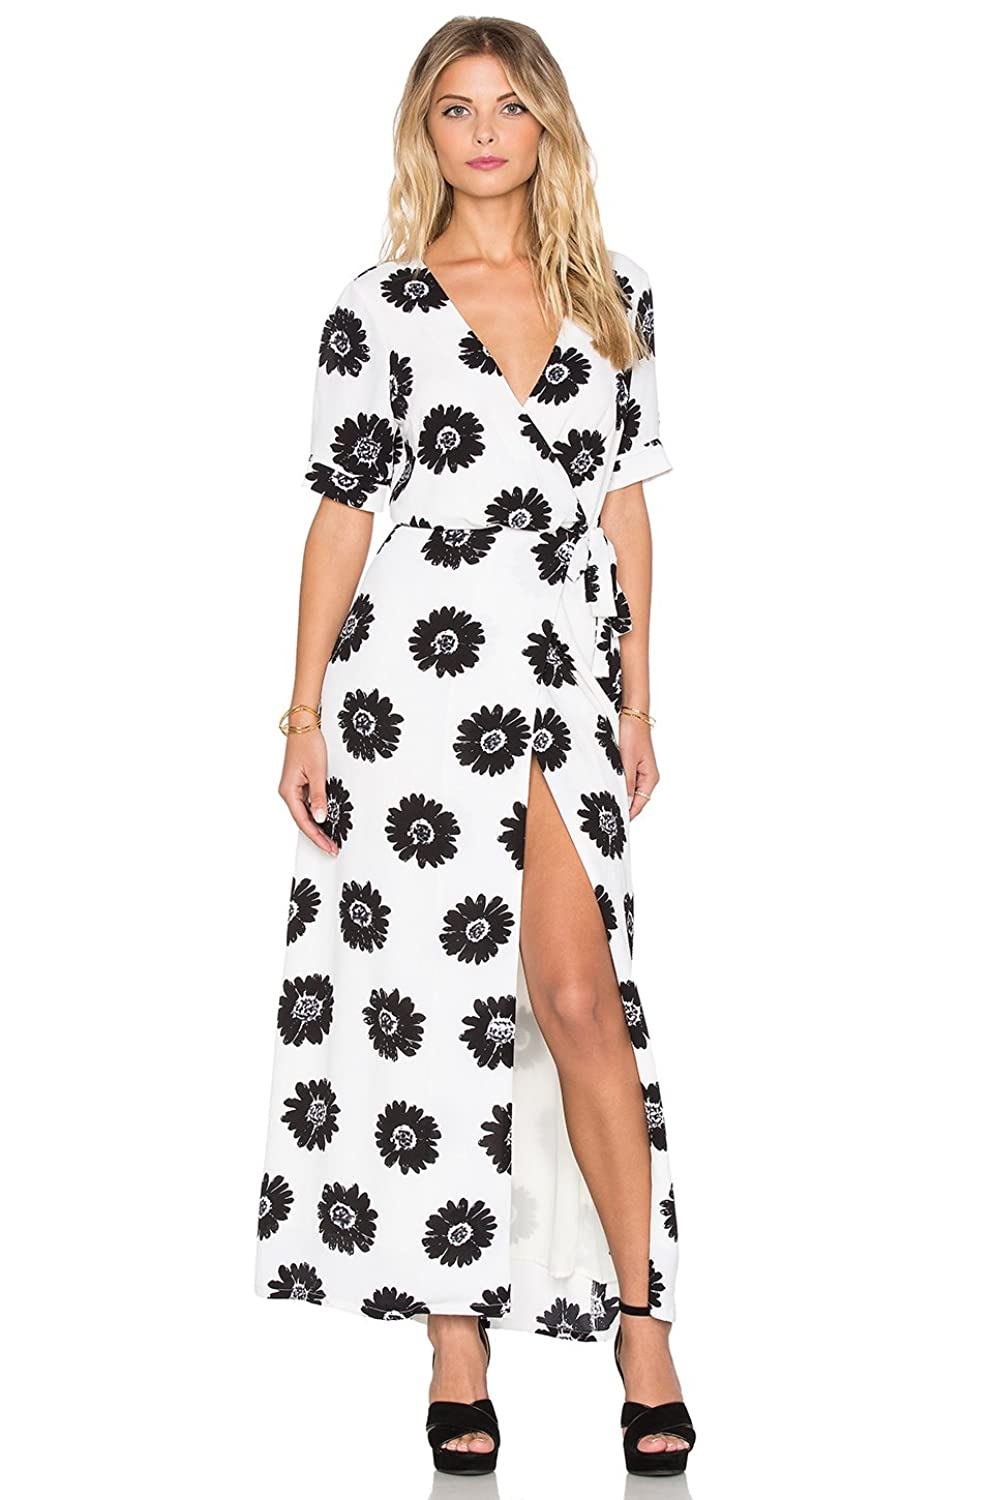 Gwendolyn Y women's White Black Floral Special Cuts-out Vintage Dress